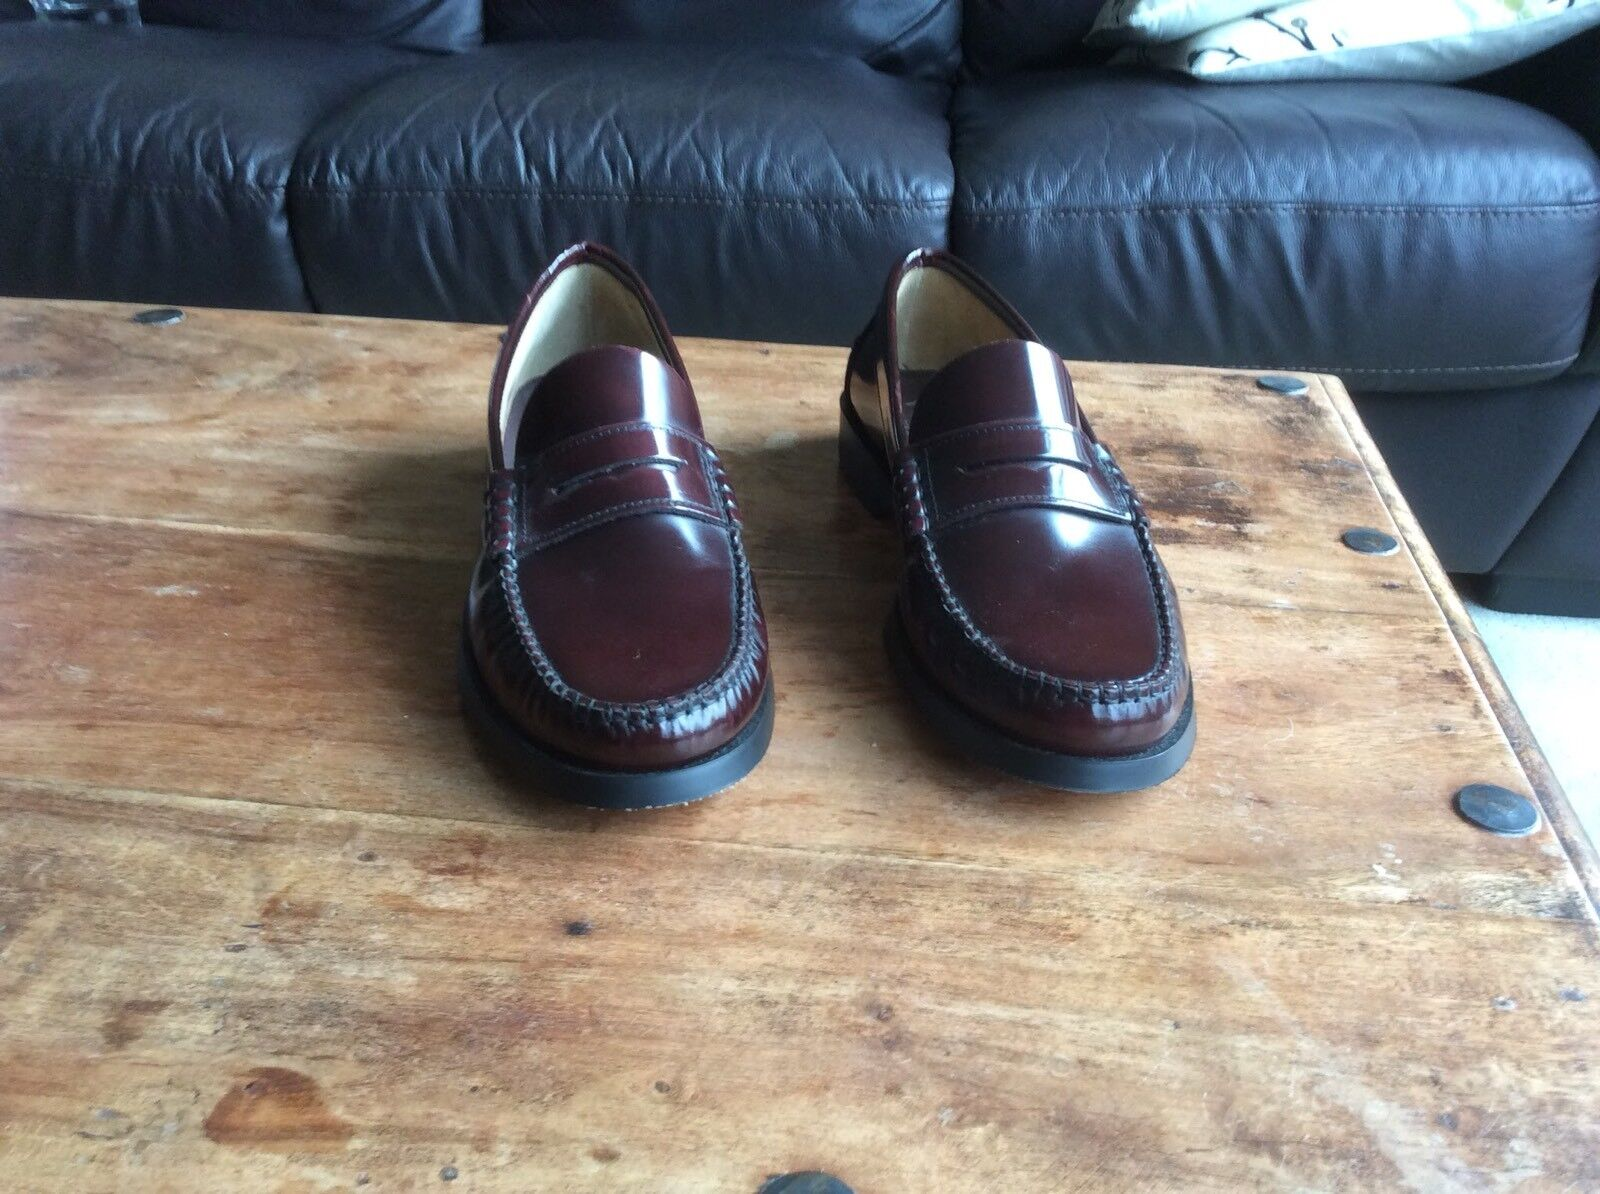 Men's, 44 Repite, Spanish, Oxblood, Leather Loafers, 44 Men's, 8f9b48